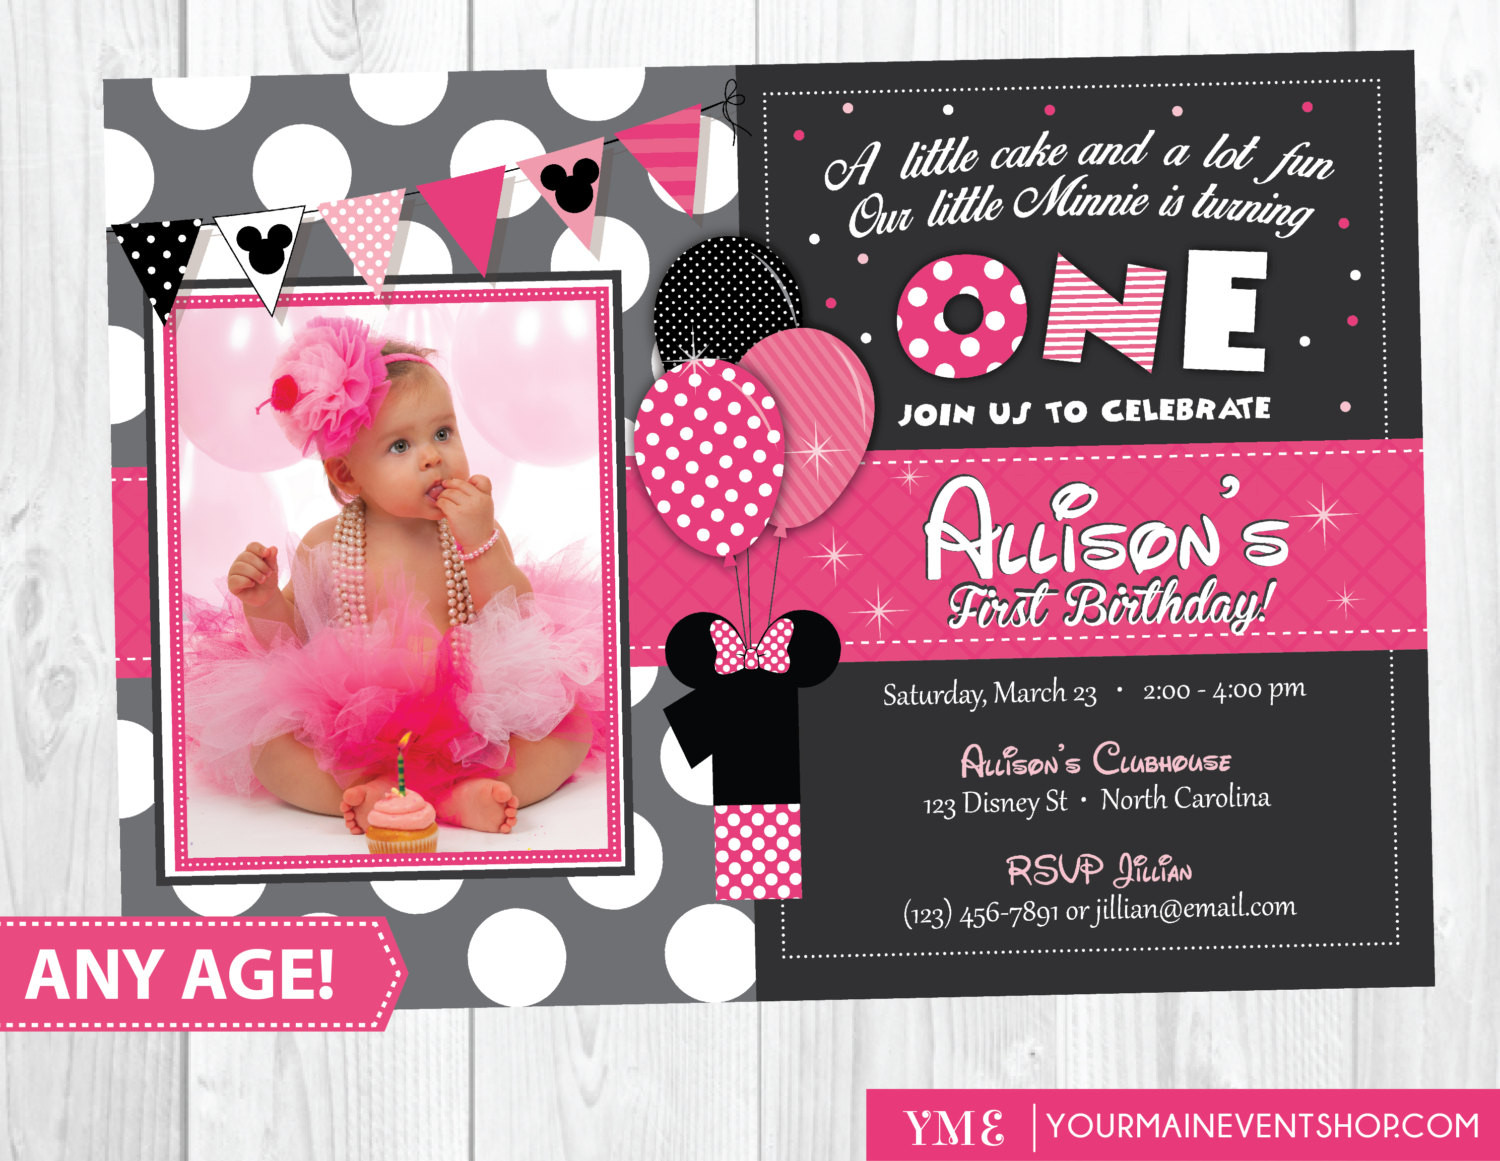 Best ideas about 1st Birthday Minnie Mouse Invitations . Save or Pin Minnie Mouse Birthday Invitation Minnie Mouse Inspired Now.